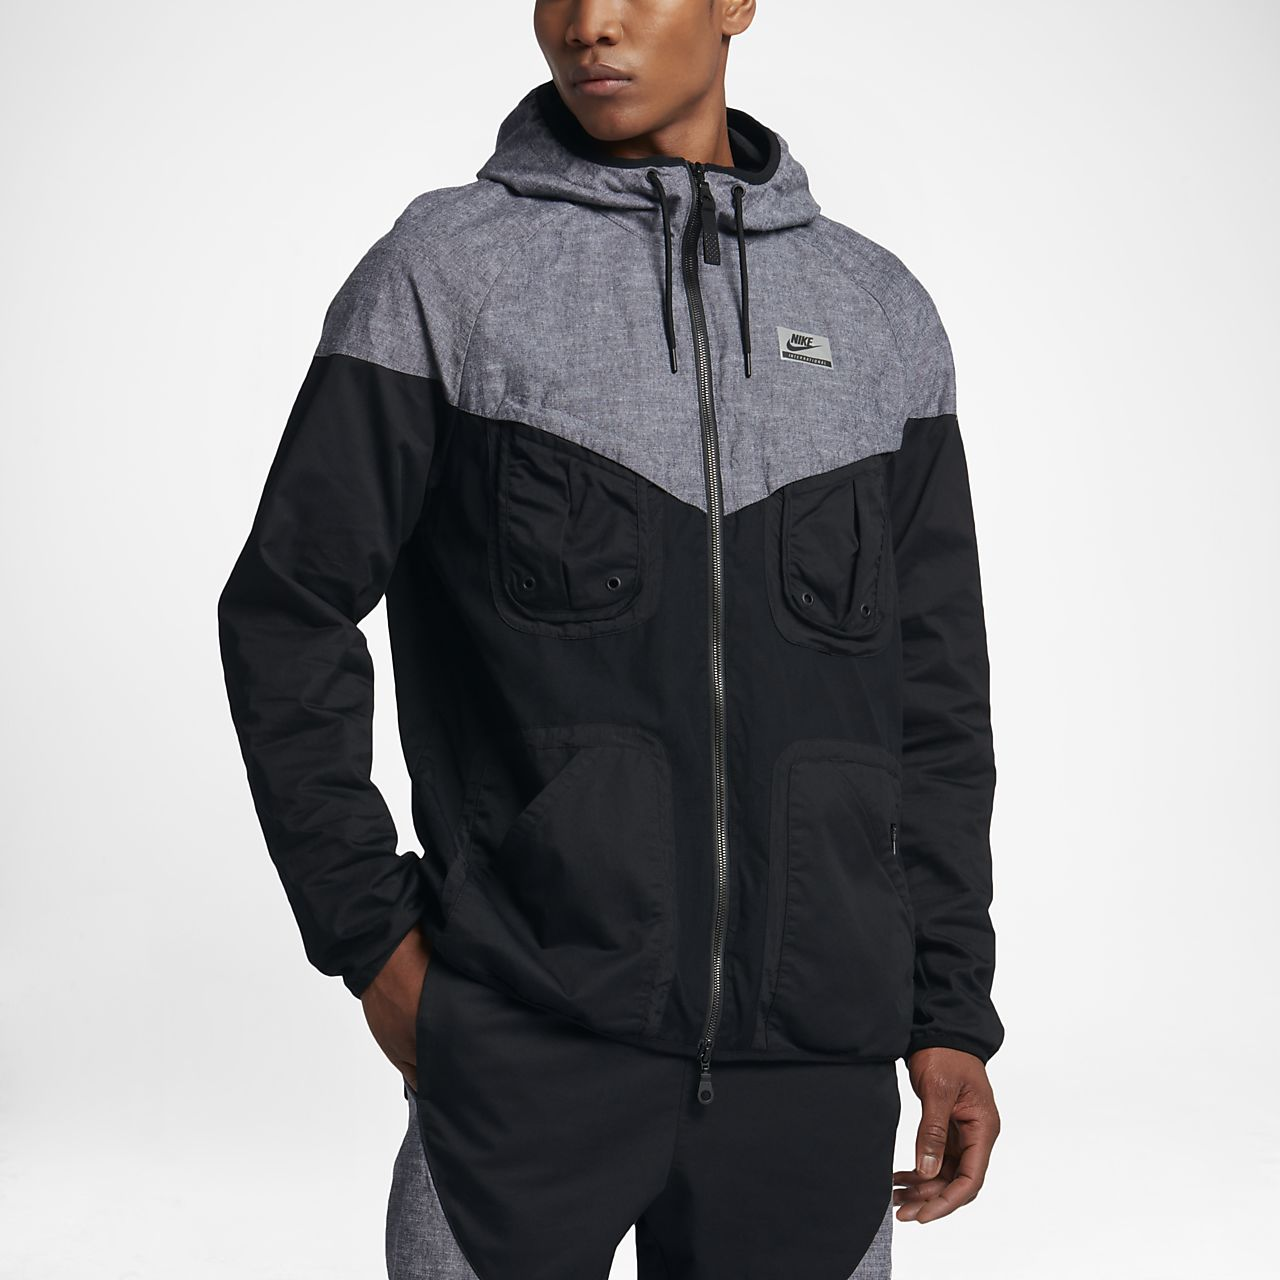 Windrunner Nike Vn International Men's Jacket 1qrOPqn5